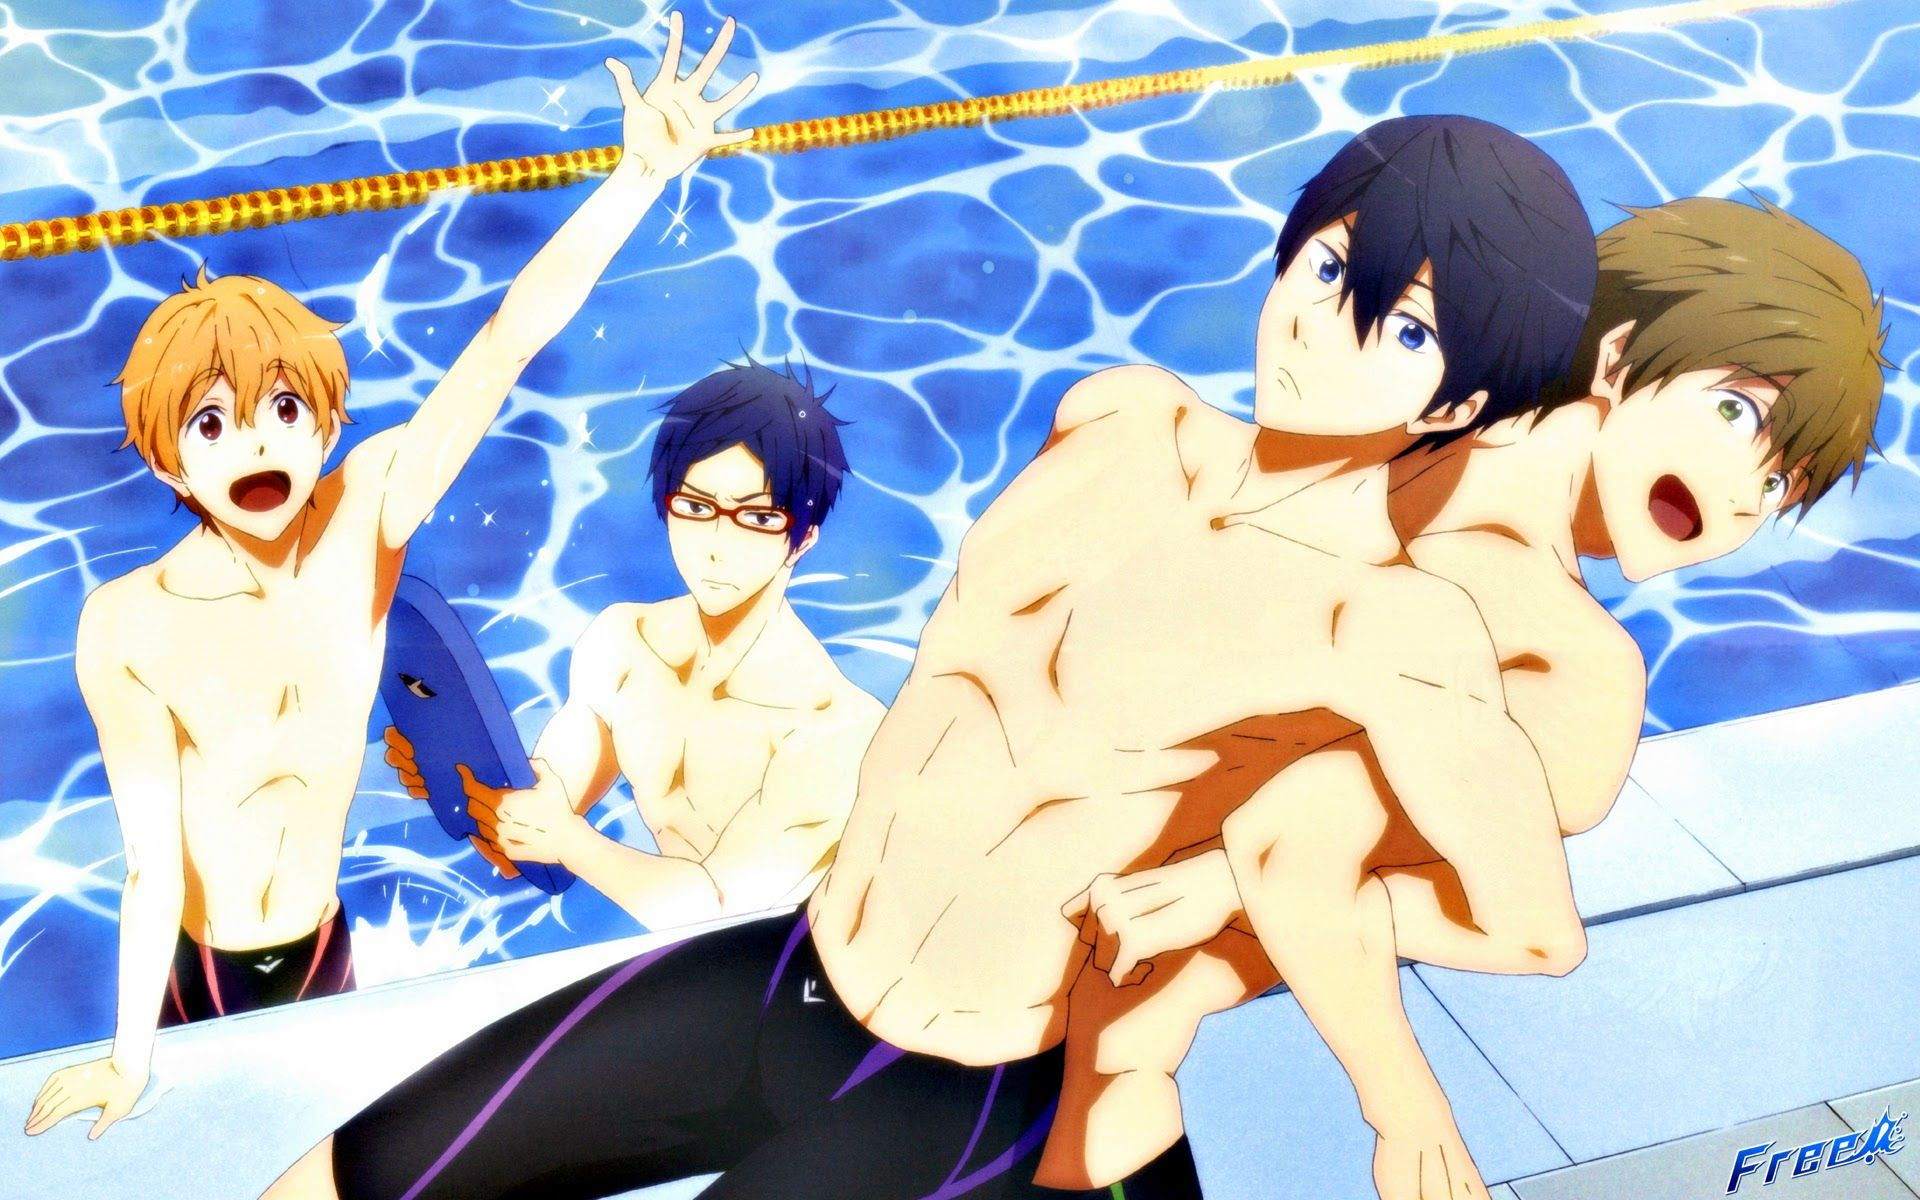 Free Wallpaper Anime Haruka Nanase Gou Matsuoka Makoharu Haruka Makoto Nagisa Rei 1135905 Hd Wallpaper Backgrounds Download One of the close friends you had made in the small town of iwatobi. free wallpaper anime haruka nanase gou